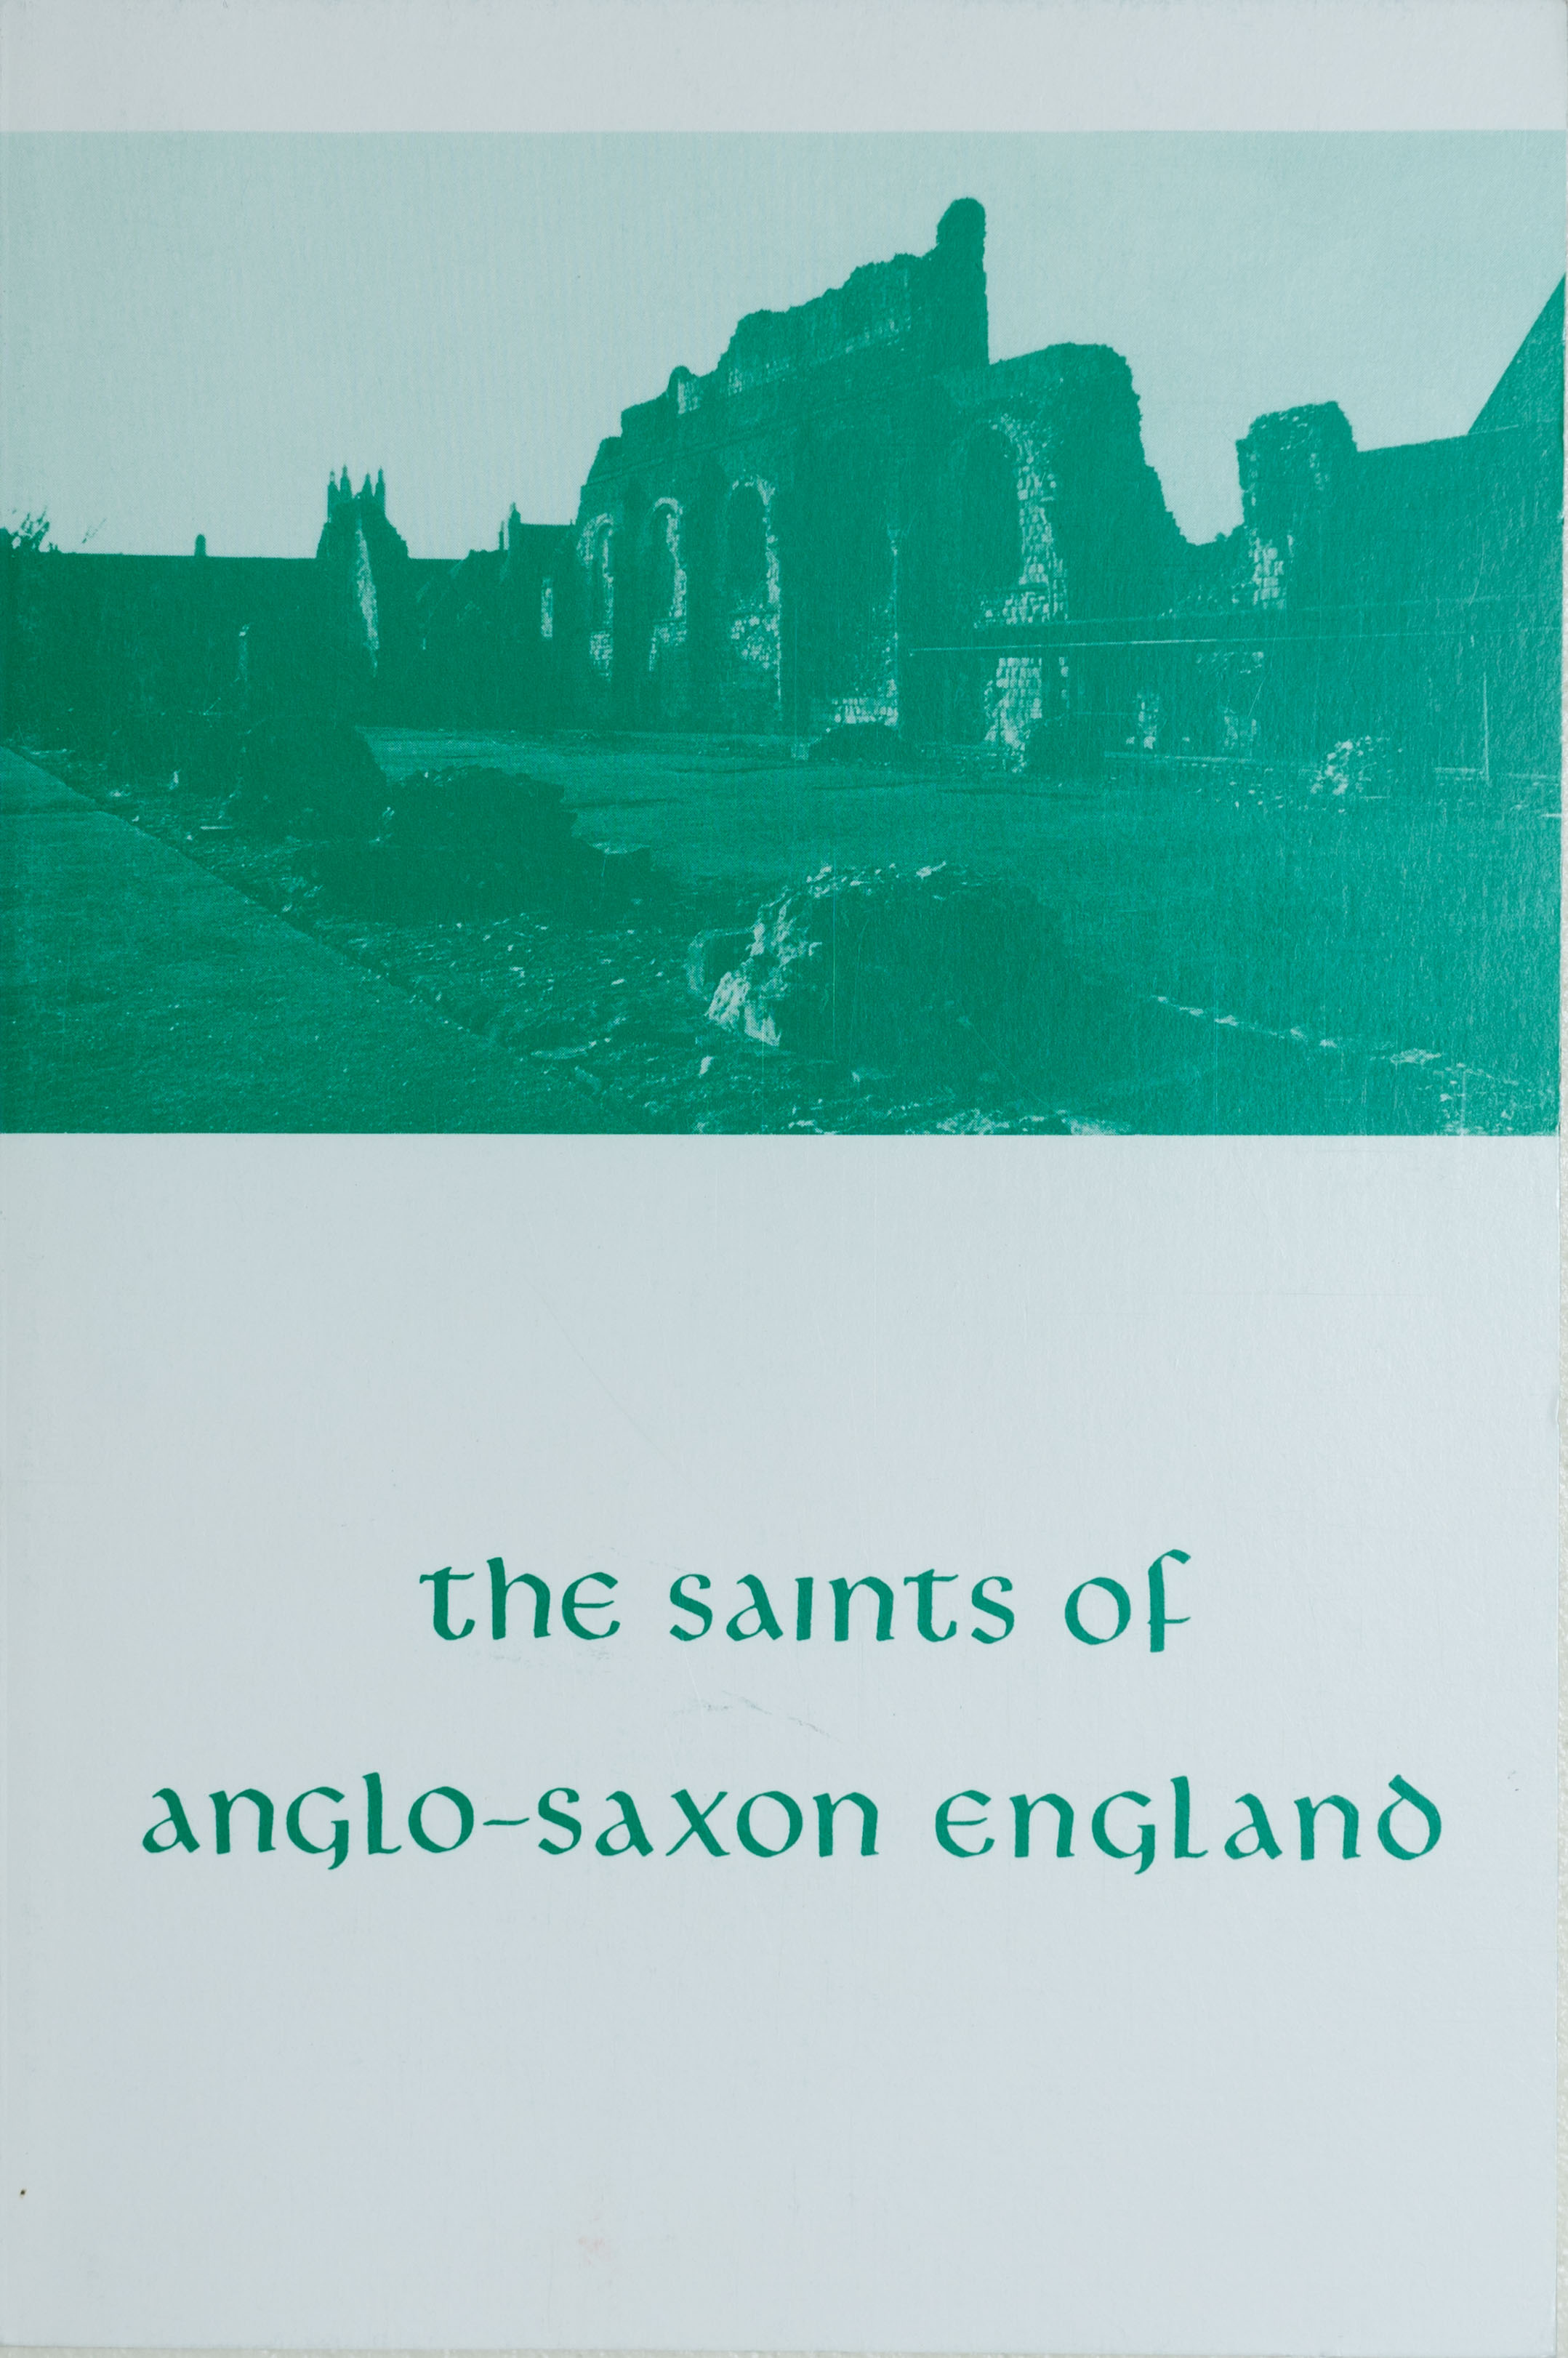 The Saints of Anglo-Saxon England Vol. 2: 9th-11th centuries